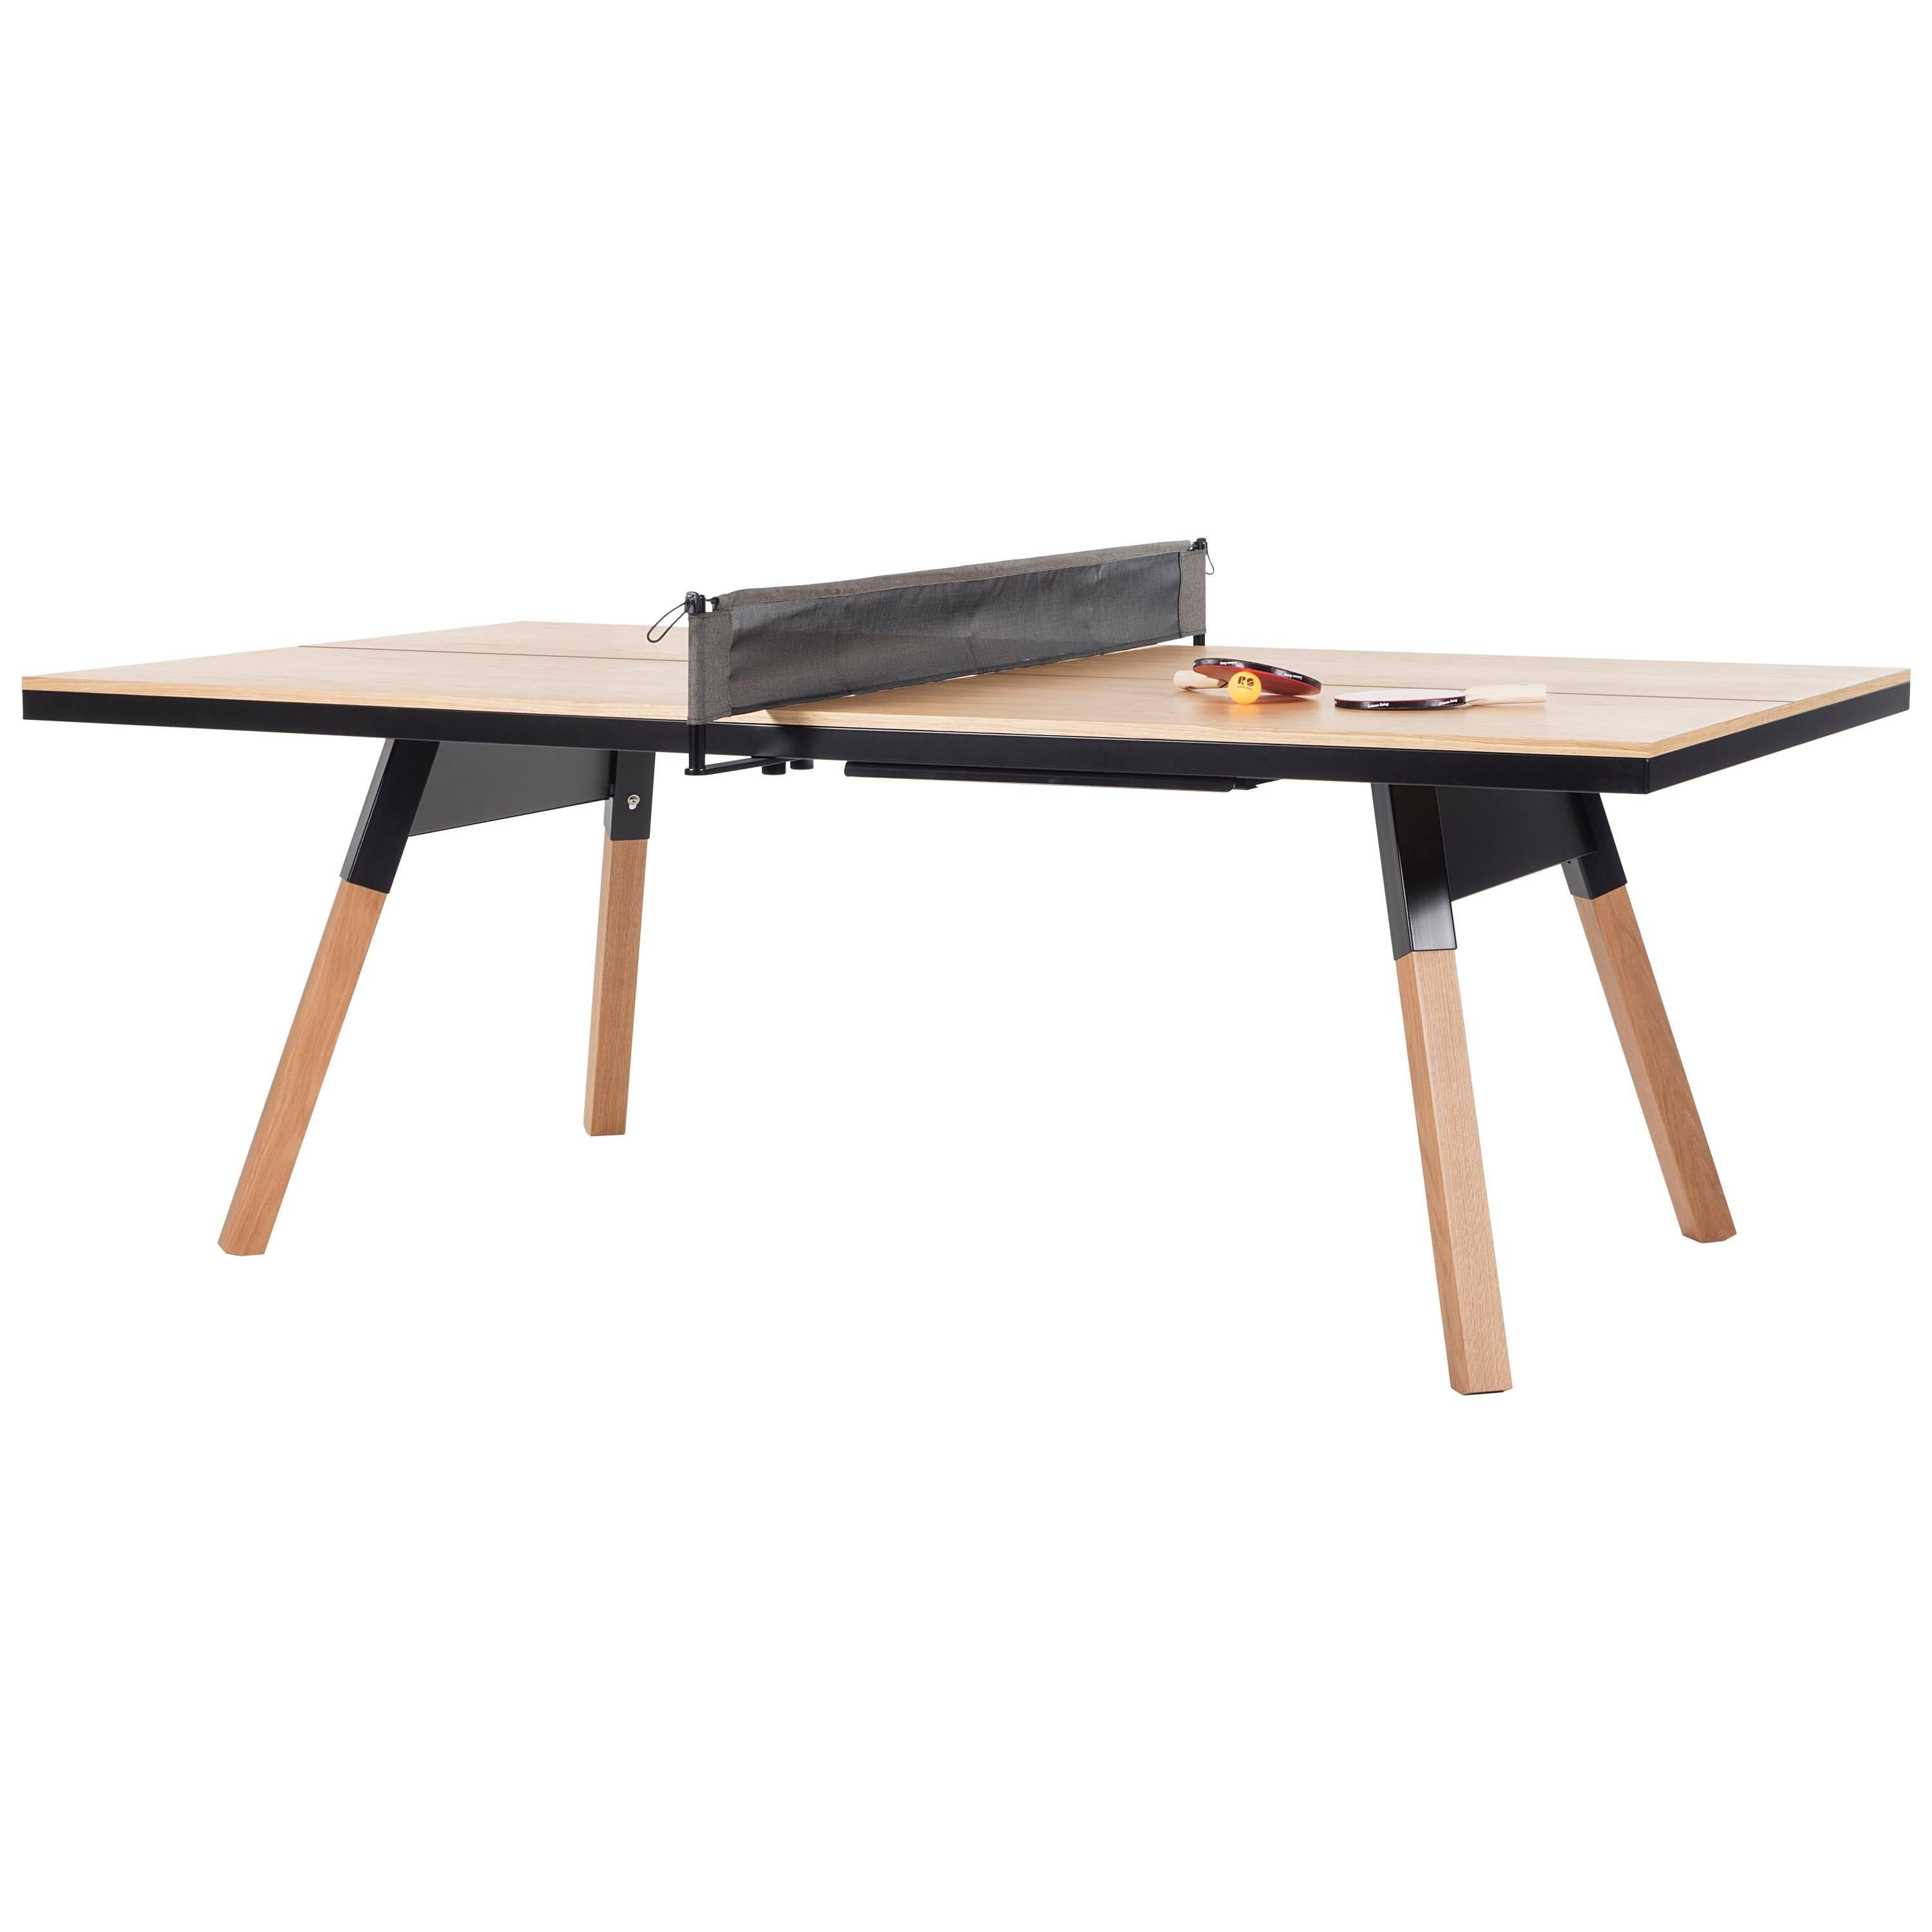 You U0026 Me Wooden Top 220 Ping Pong Table In Oak And Black By RS Barcelona